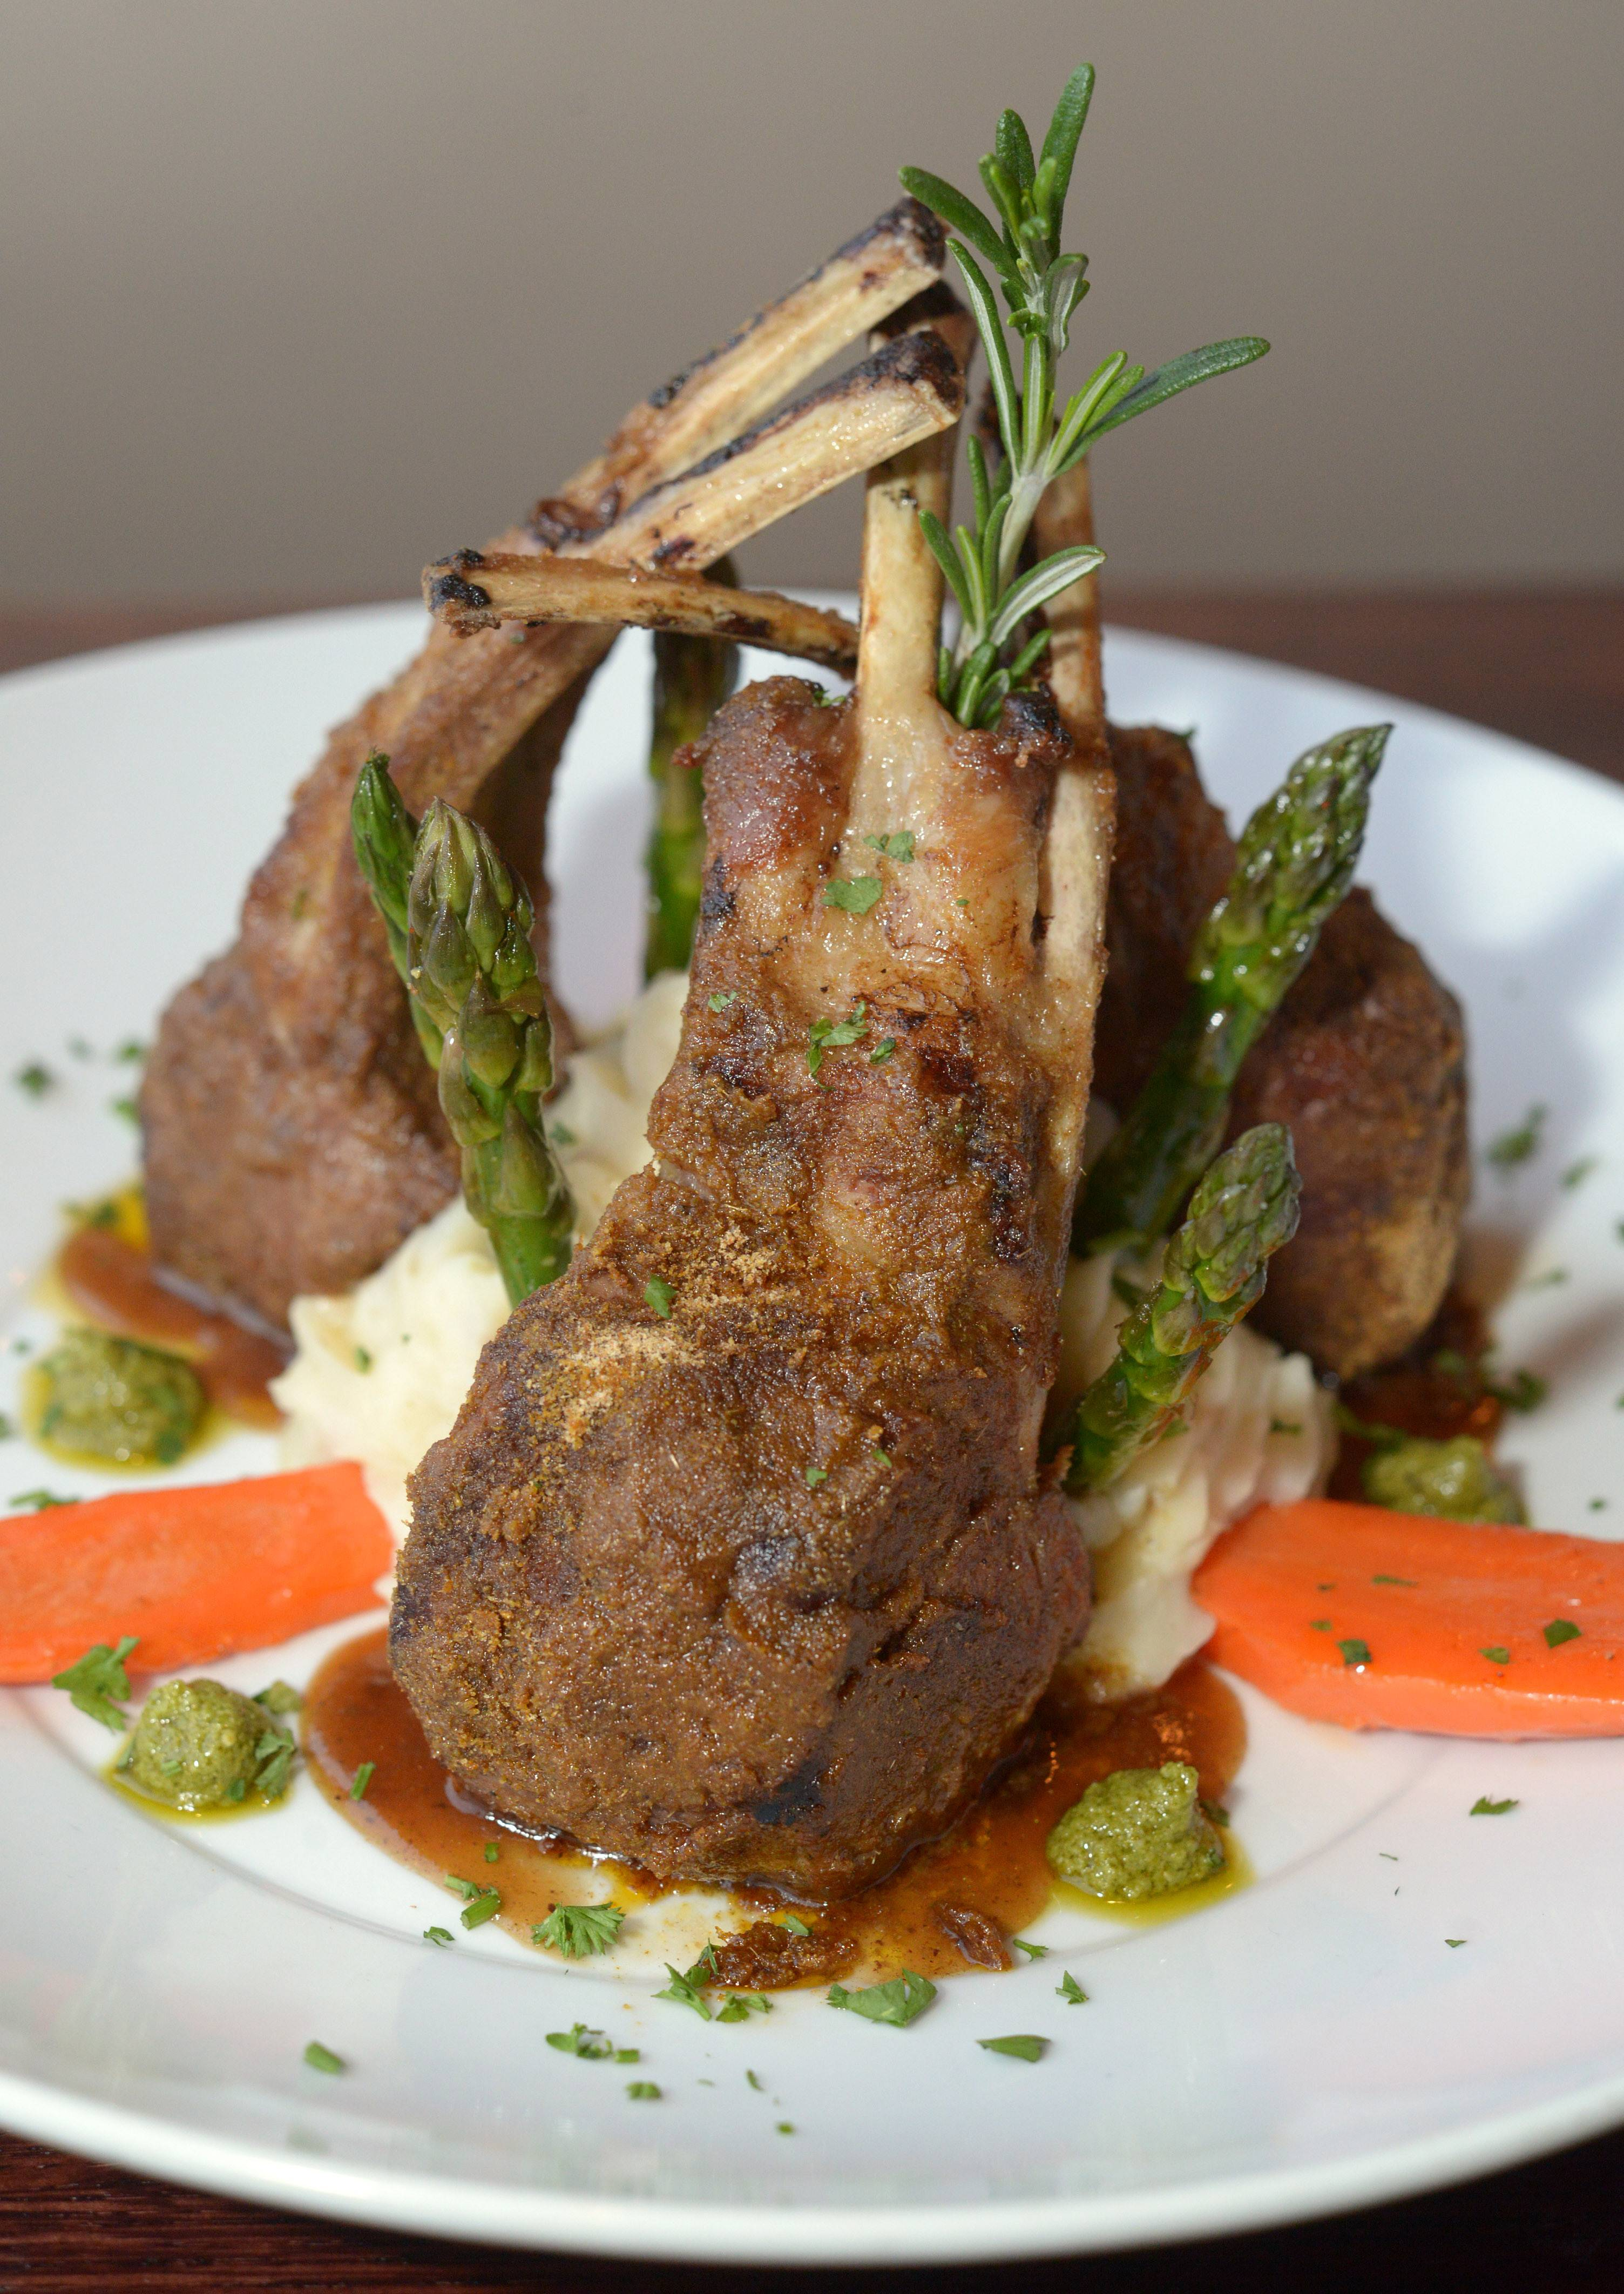 Cumin and garlic crusted Australian lamb chops served with garlic mashed potatoes, roasted carrots and asparagus at Top Table in St. Charles